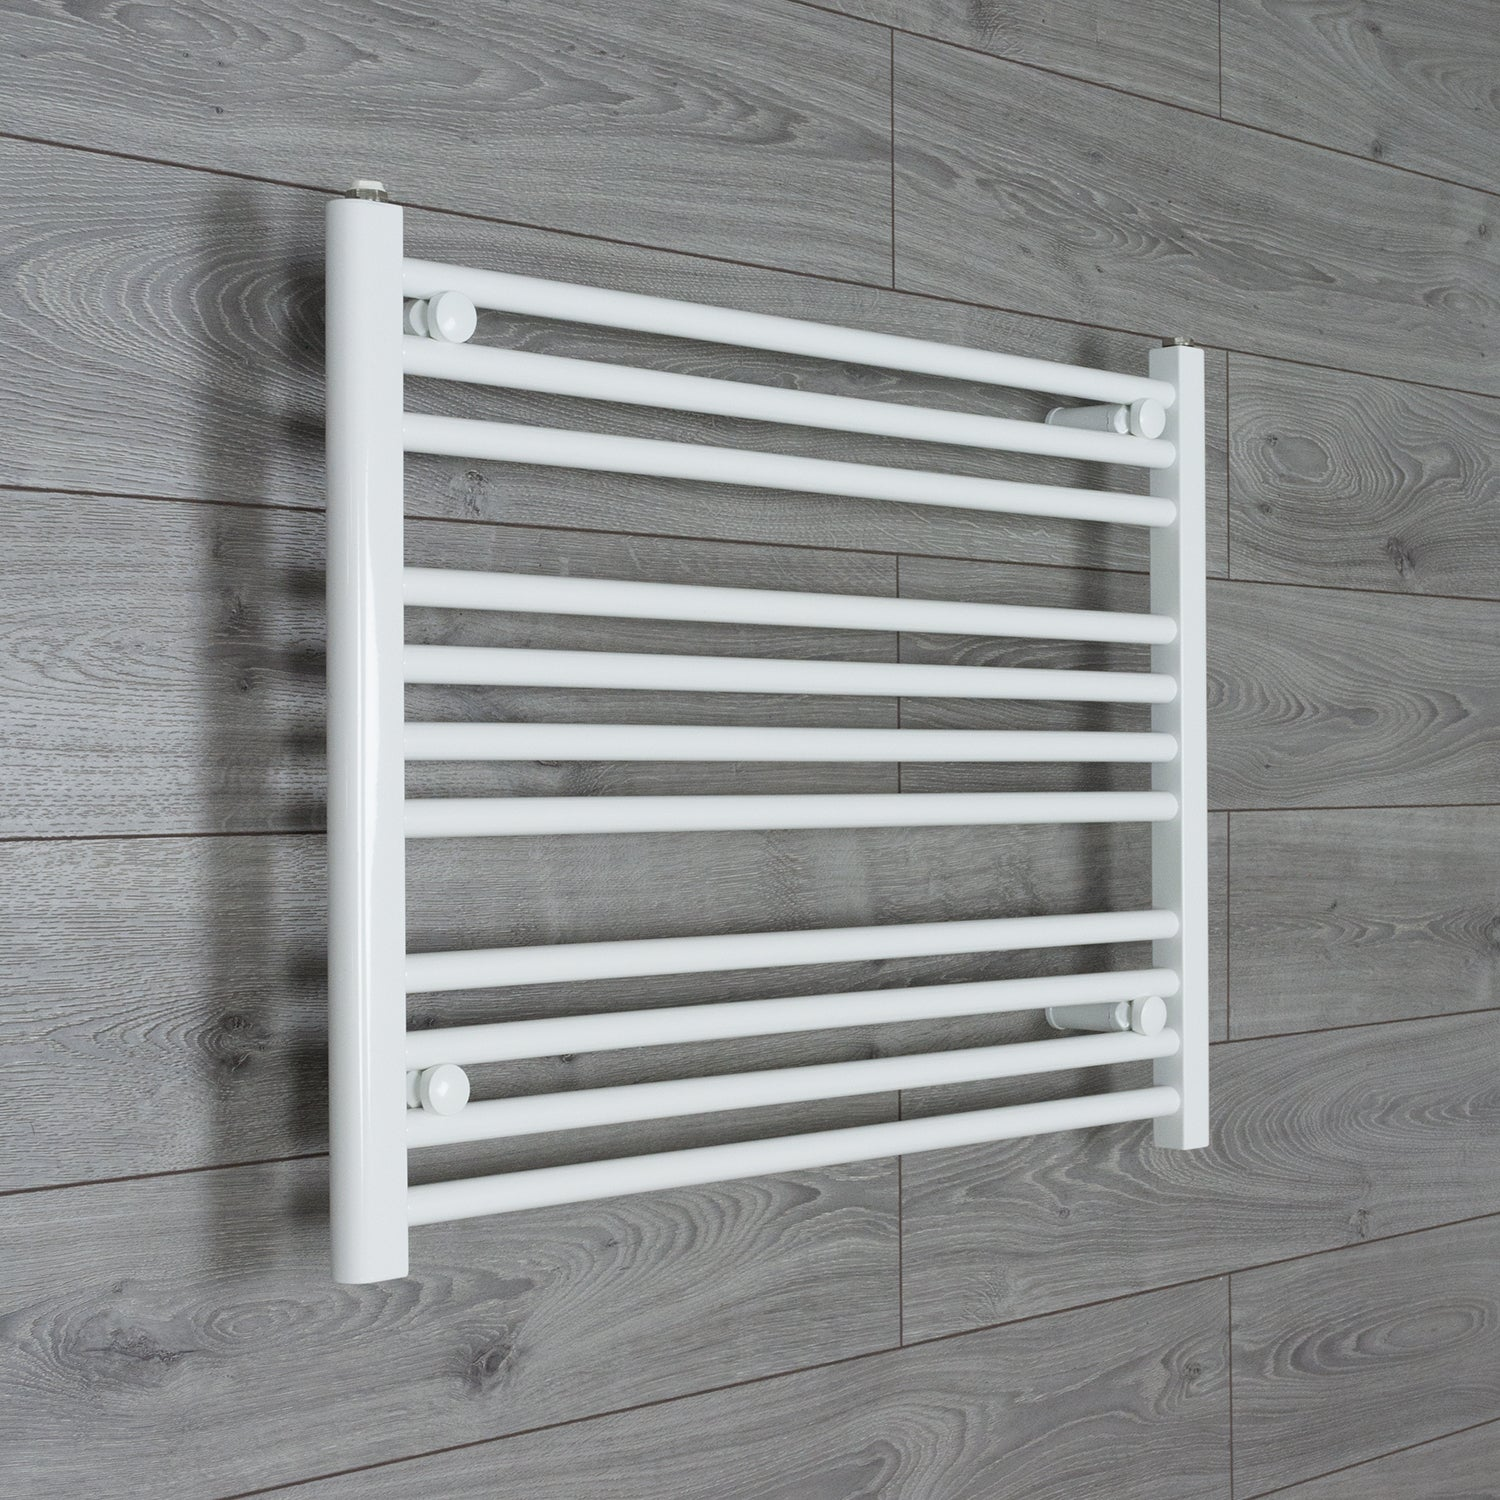 900x600mm Flat White Electric Element Towel Rail